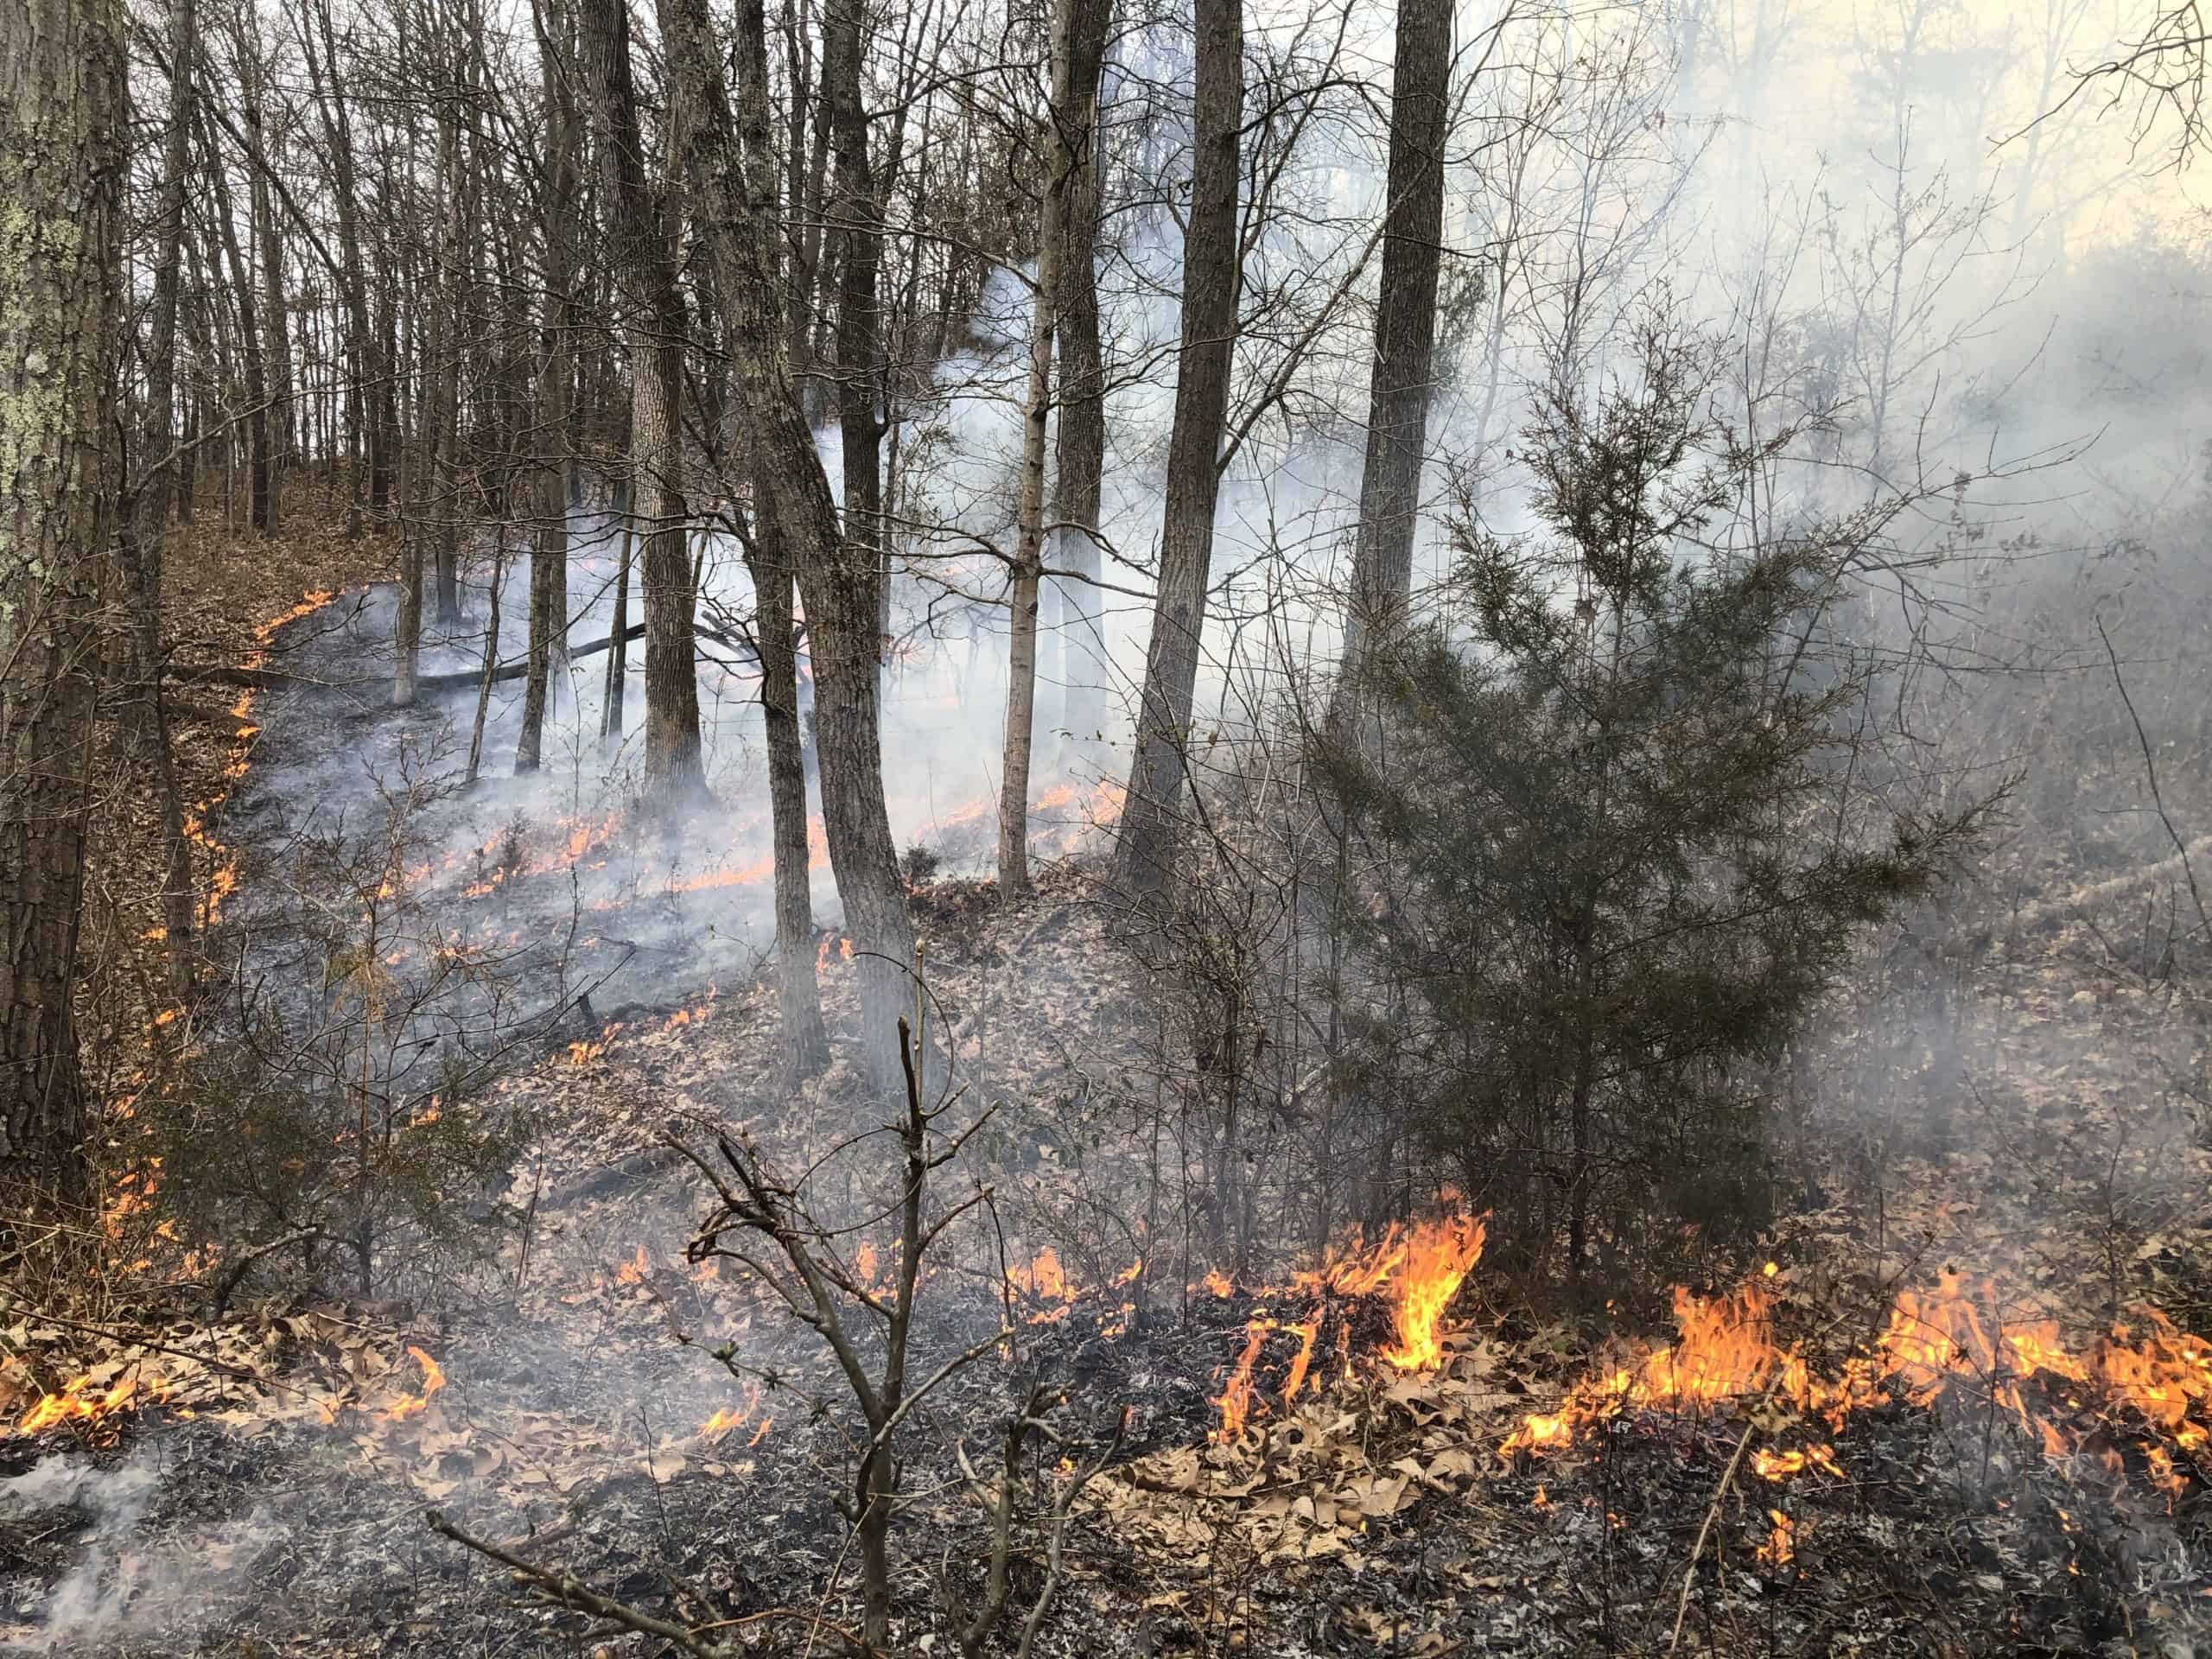 Prescribed Fire to Restore Landscapes and Ecosystems